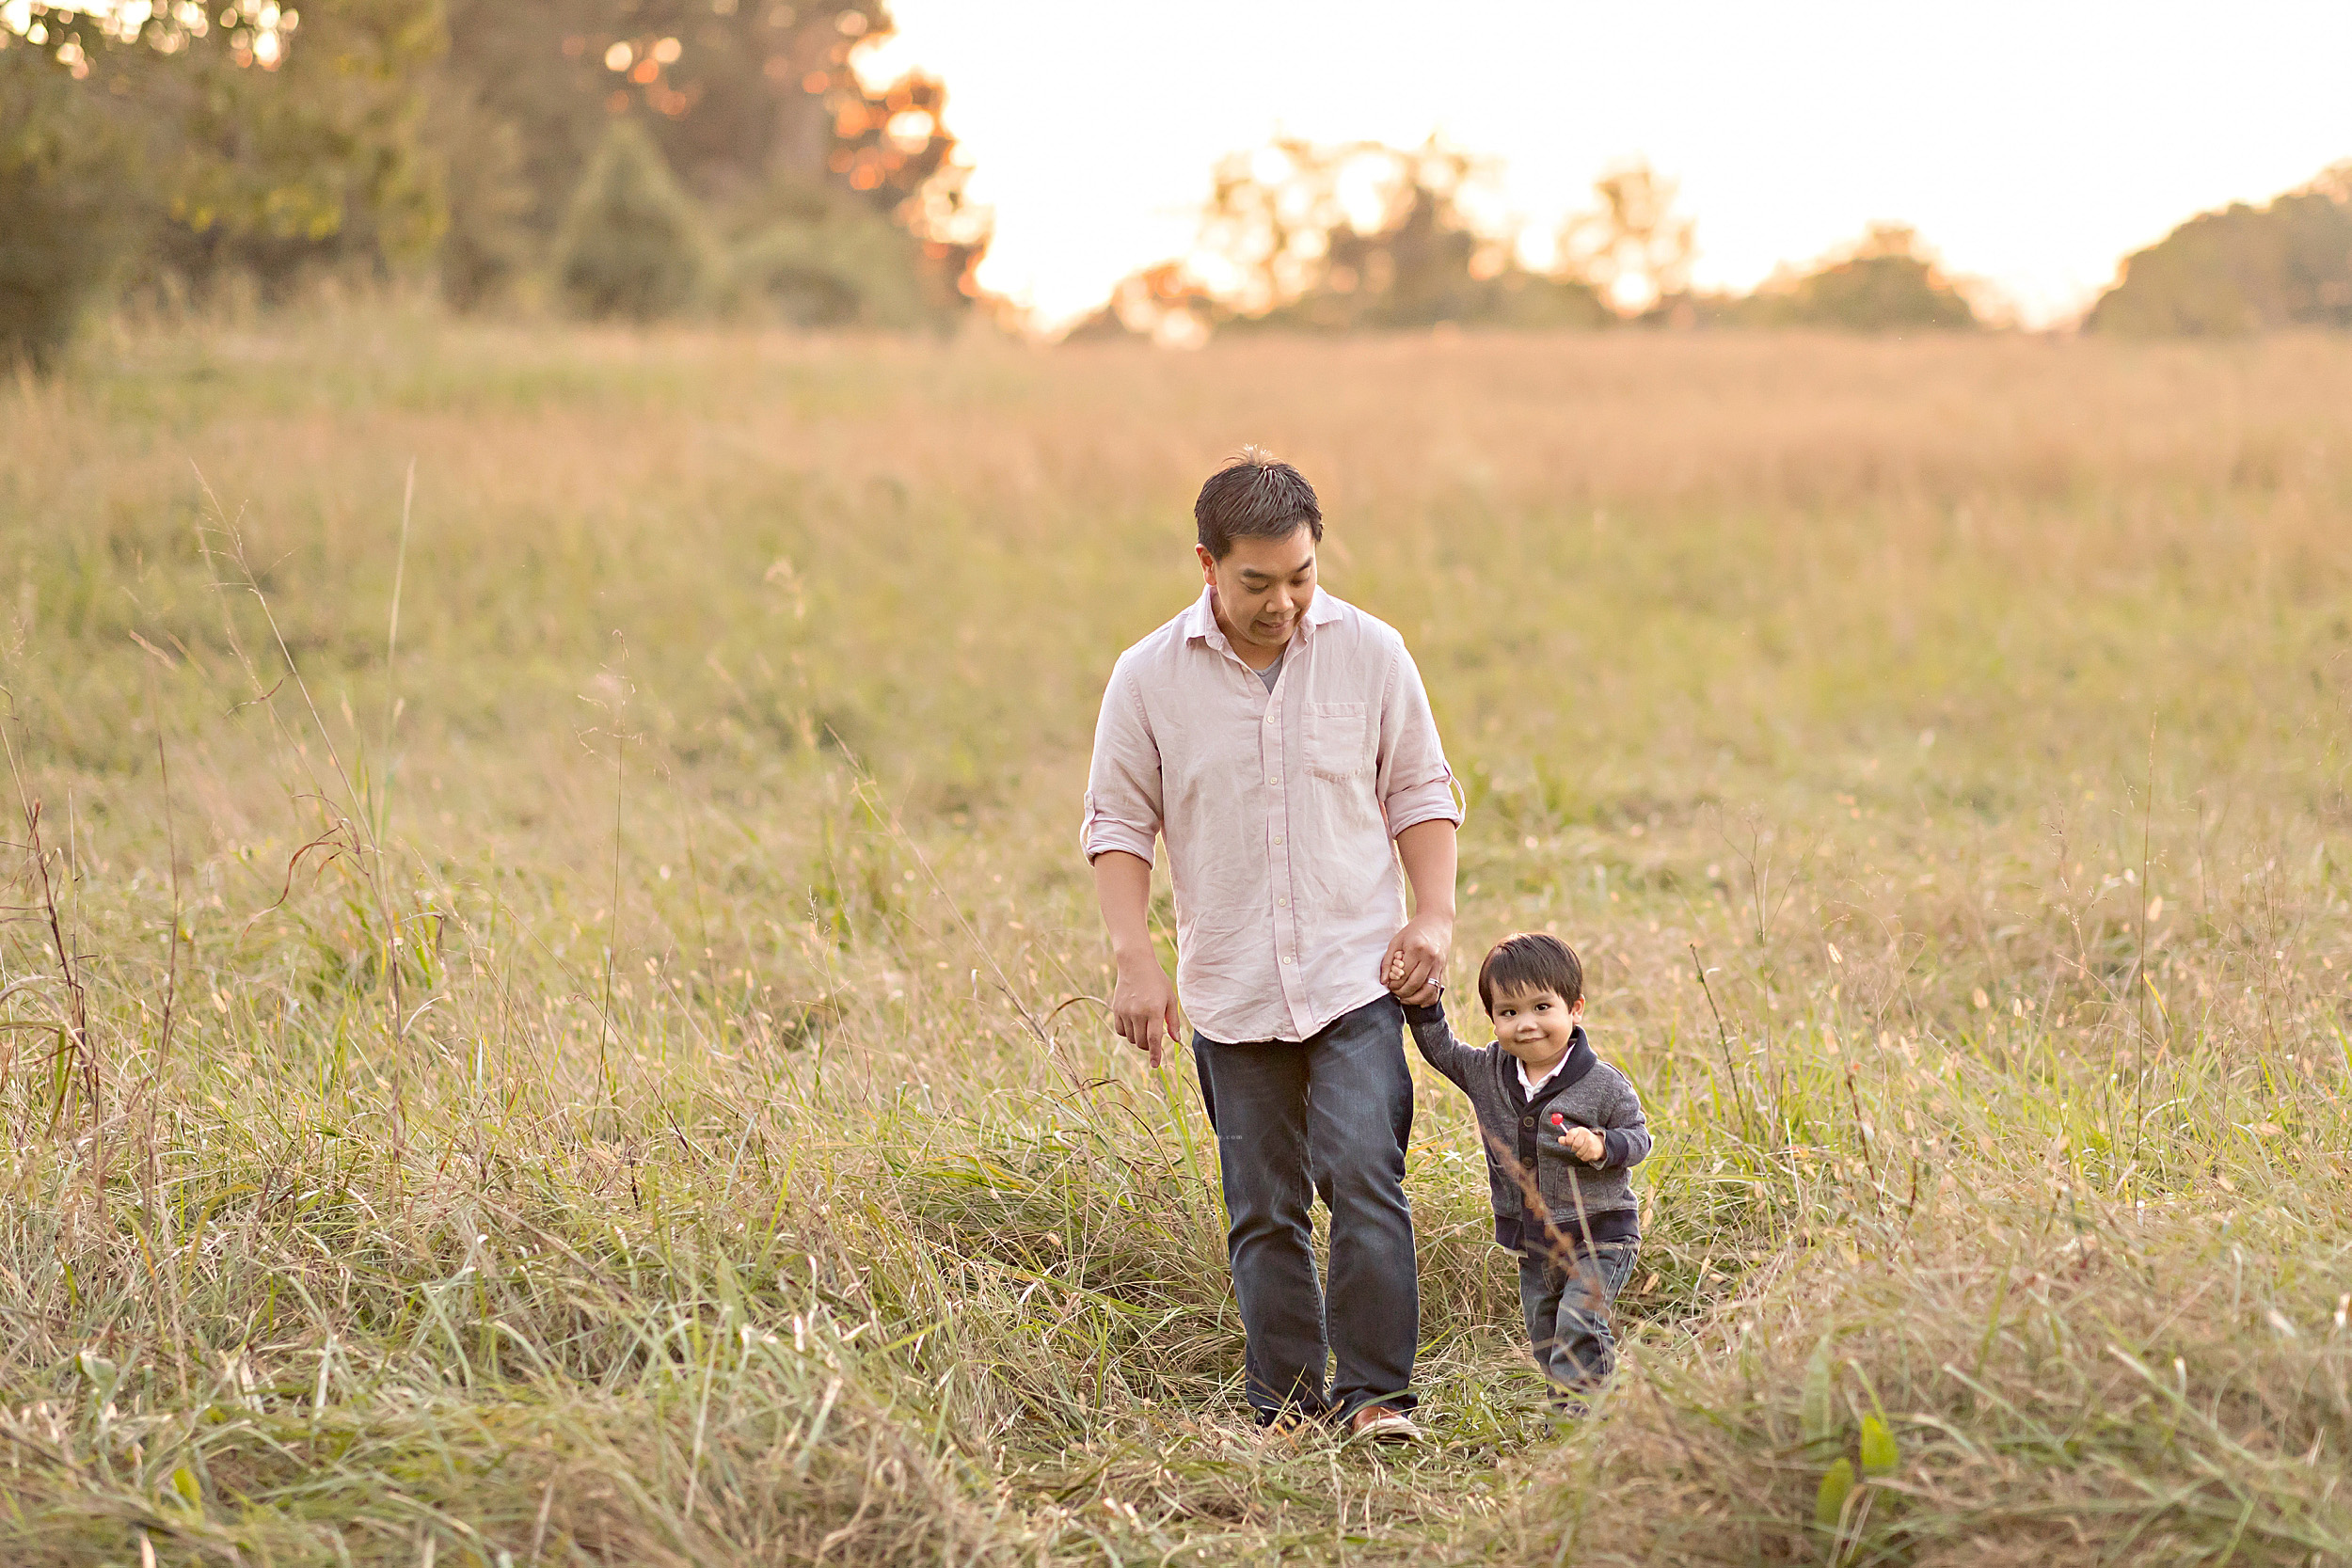 atlanta-peachtree-hills-alpharetta-sandy-springs-buckhead-virginia-highlands-west-end-decatur-lily-sophia-photography-outdoor-sunset-field-second-birthday-toddler-boy-family-photos_1170.jpg